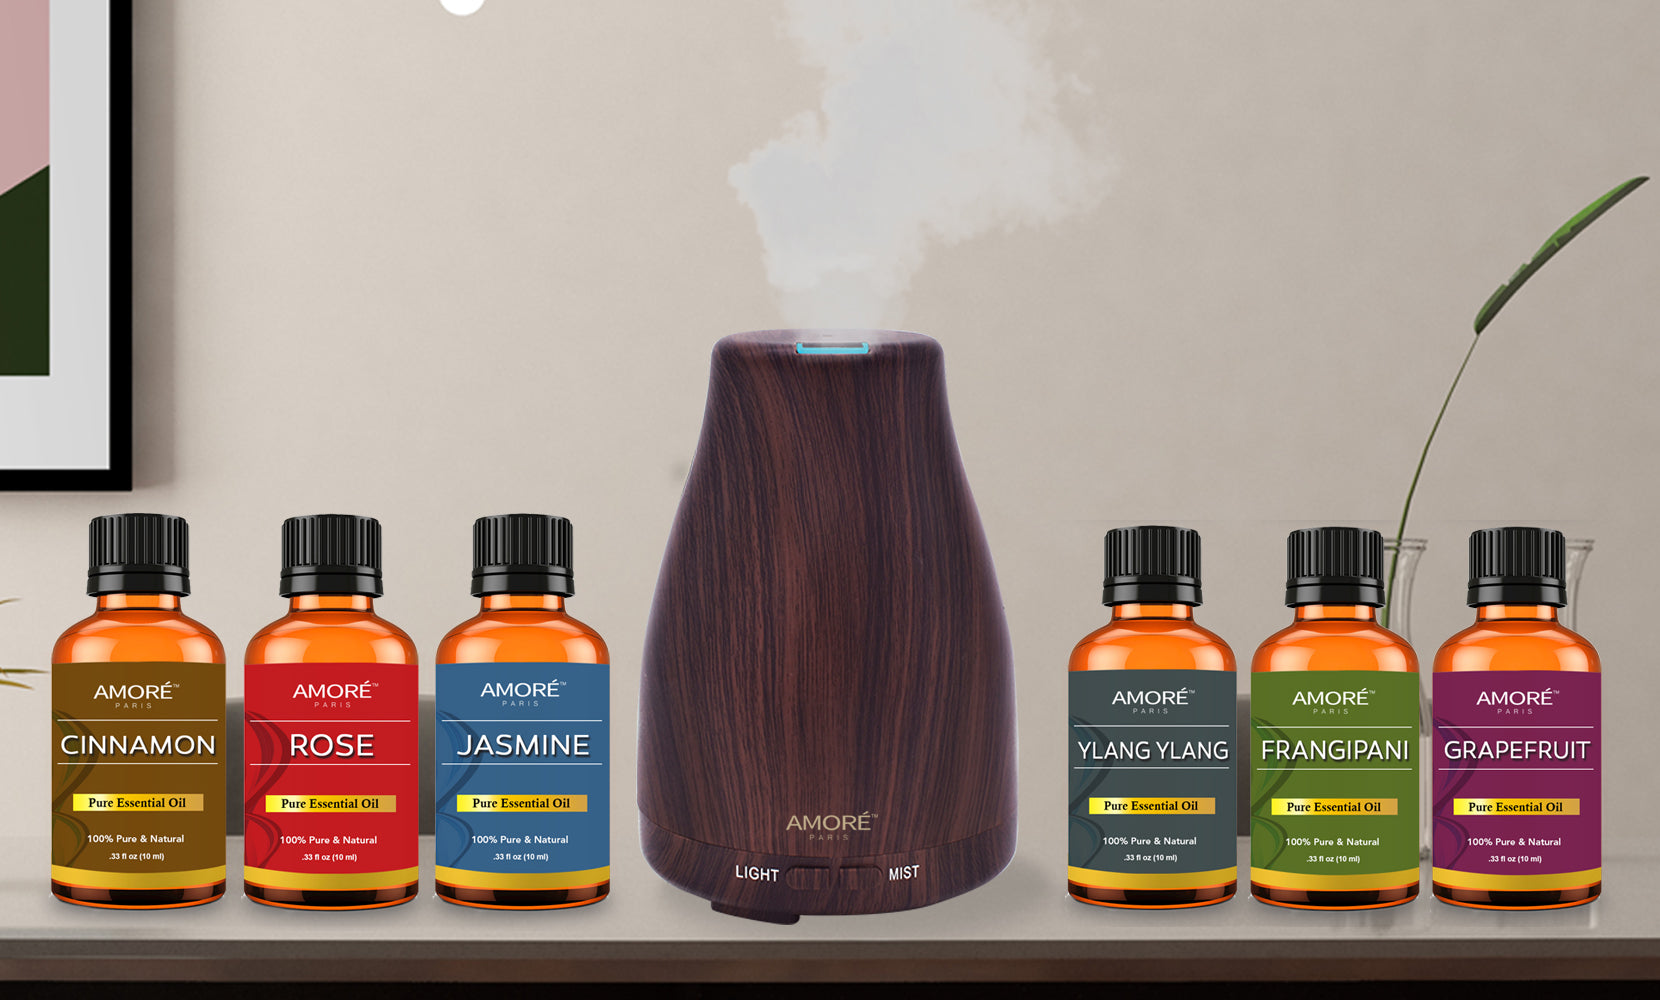 Natural Wood Grain Cool Mist Aromatherapy Diffuser  with Essential Oil Gift Set (7-Piece)